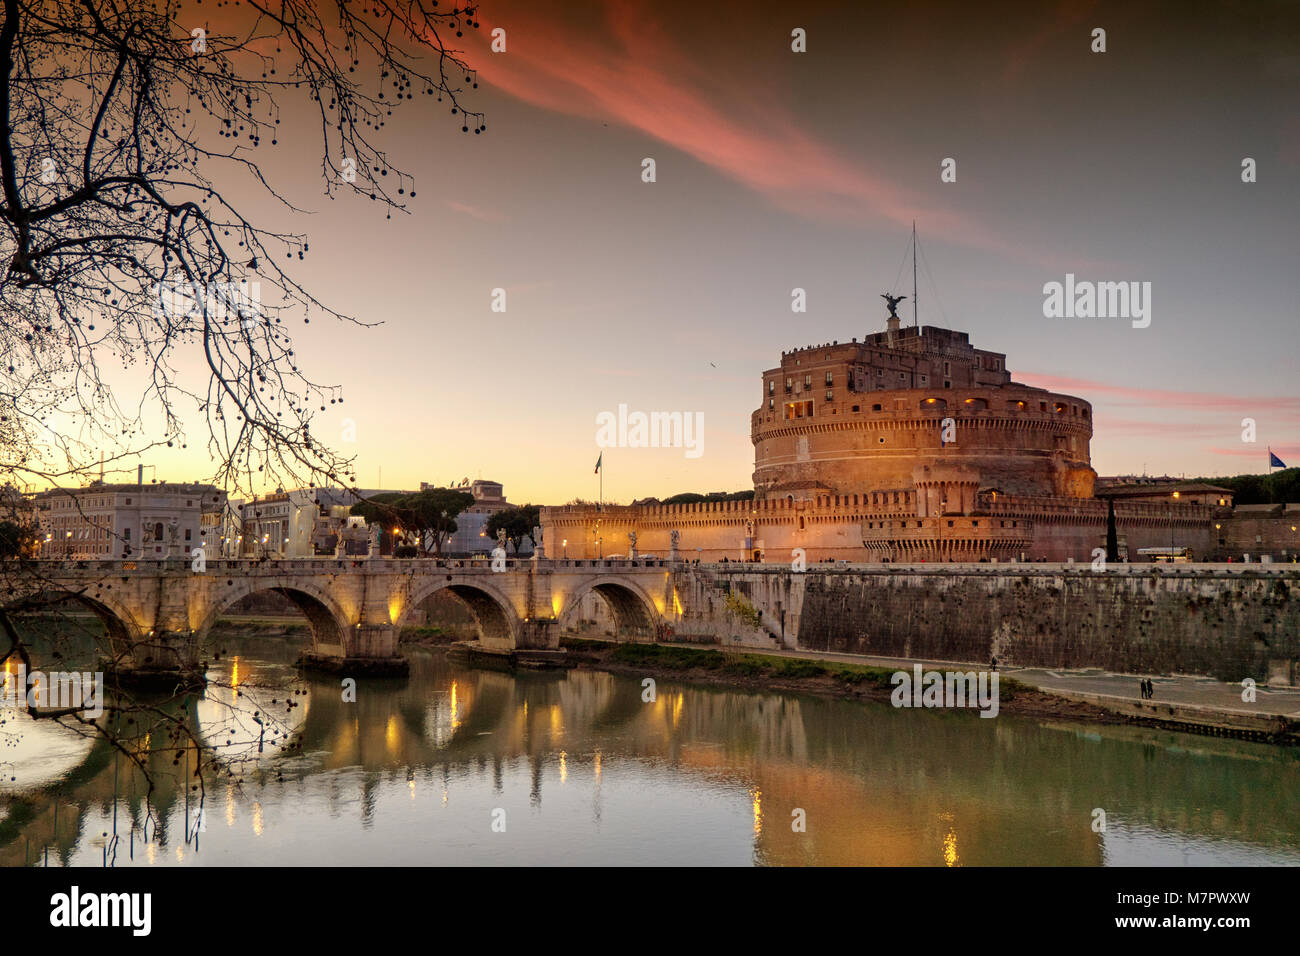 Sunset at Saint Angelo Castle in Rome, Italy - Stock Image